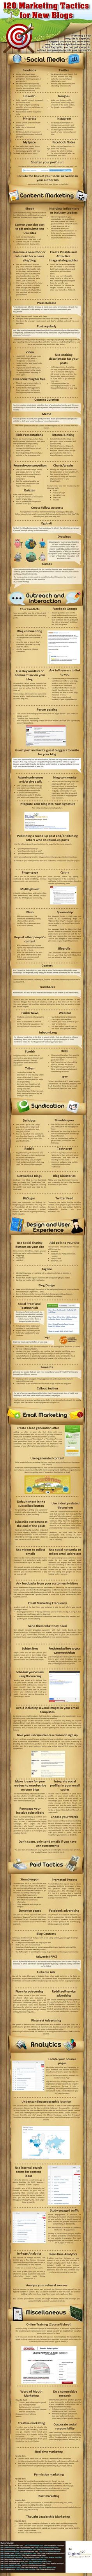 120 Marketing Tactics For New Blogs #infographic